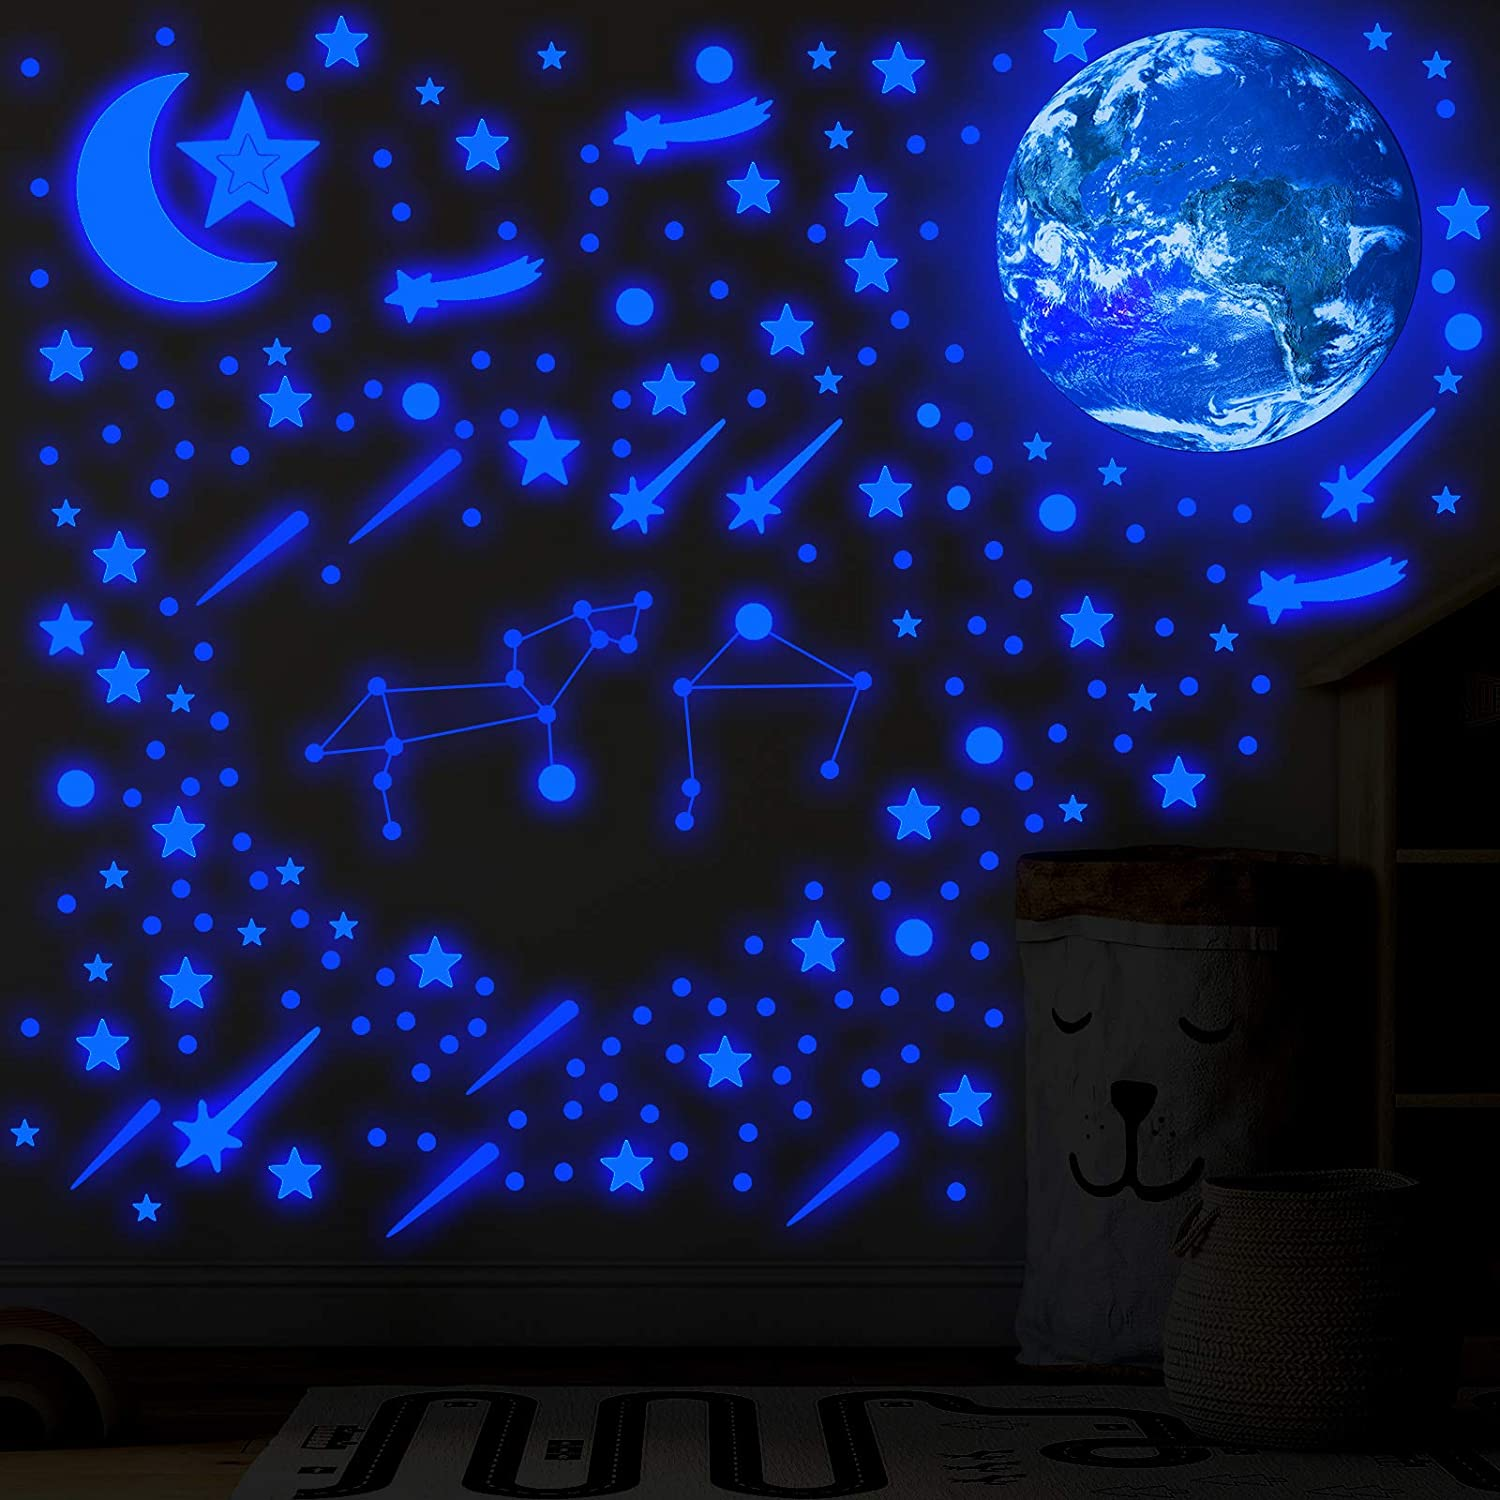 861 Pieces Glowing in The Dark Wall Stickers Self Adhesive Star Ceiling Decal 3D Fluorescent Earth Moon Wall Decal Luminous Removable Meteor Dot Ceiling Sticker for DIY Room Decoration (Blue)